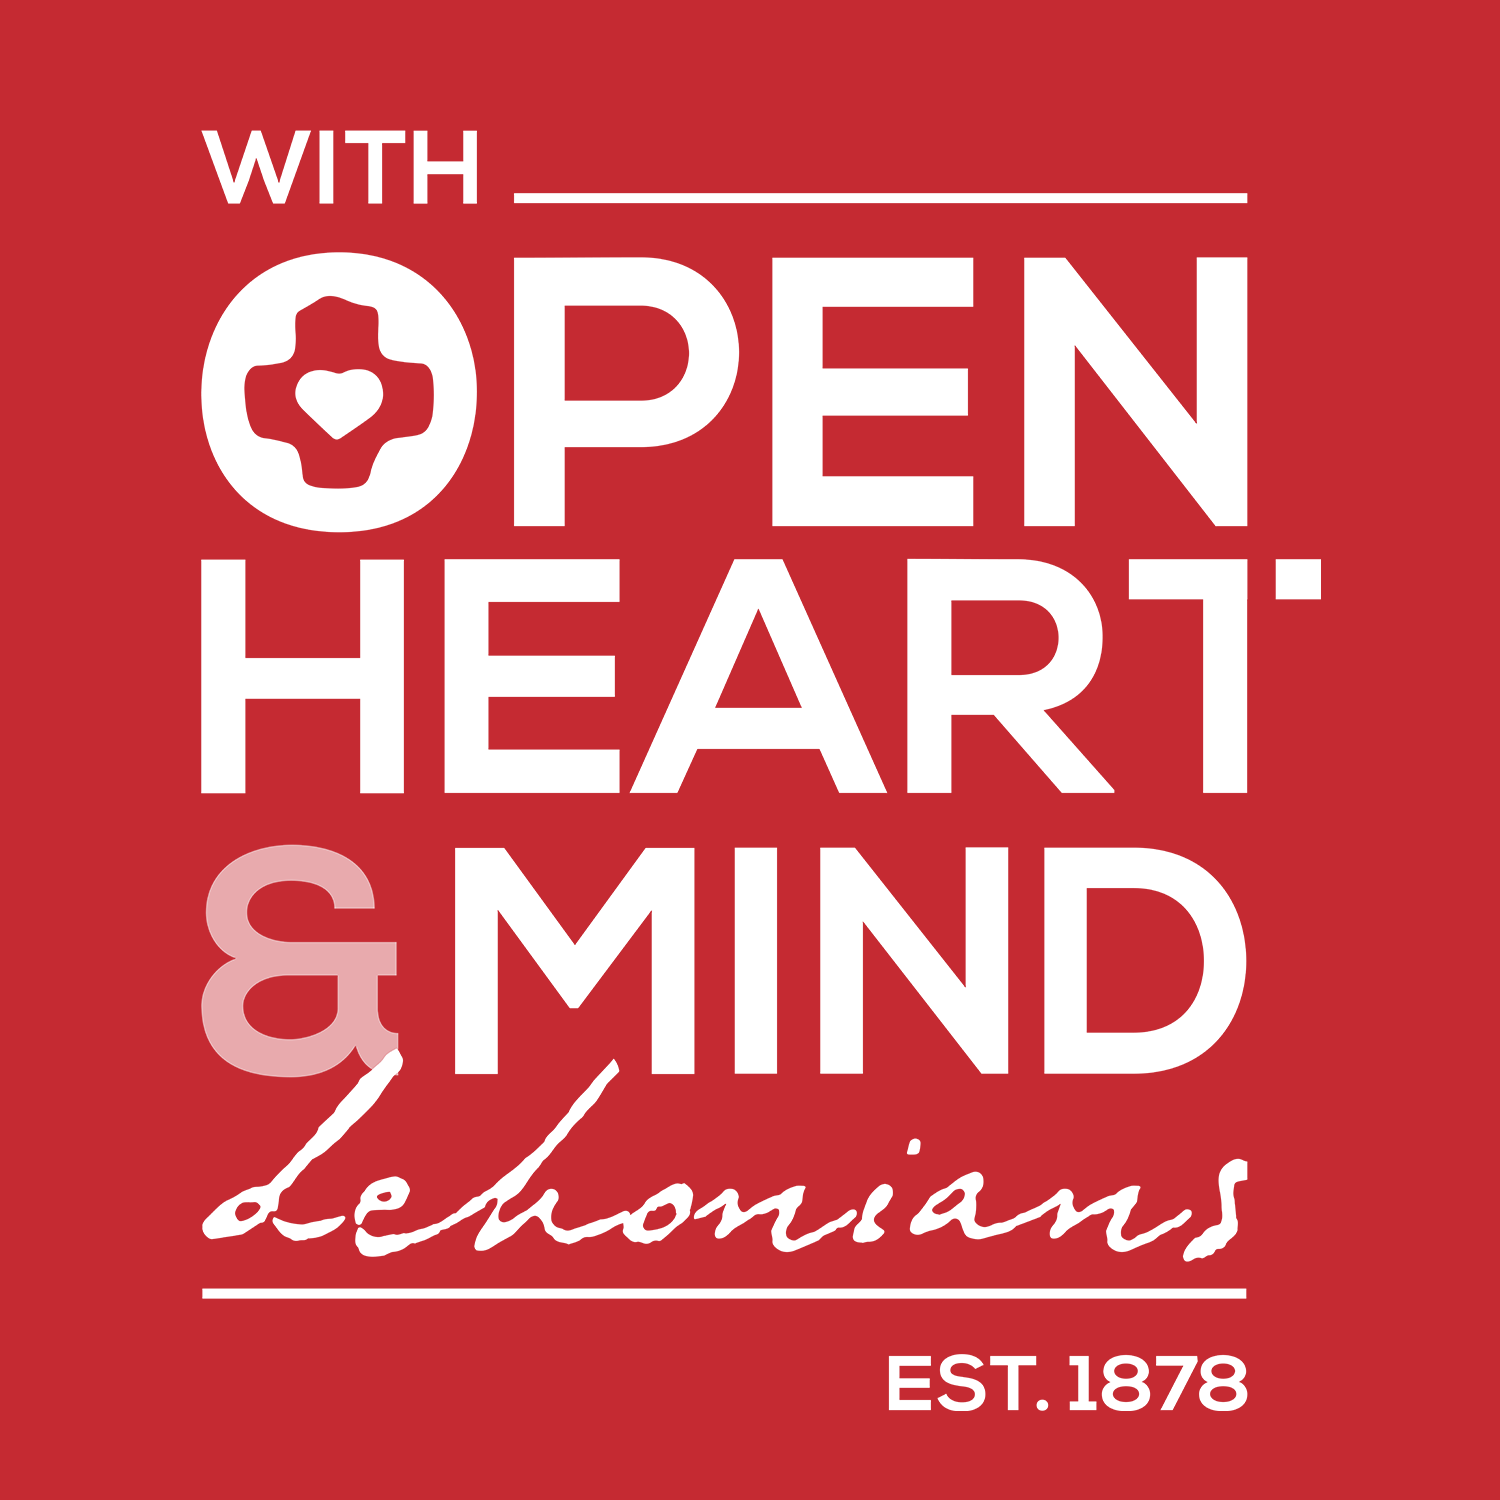 with open heart